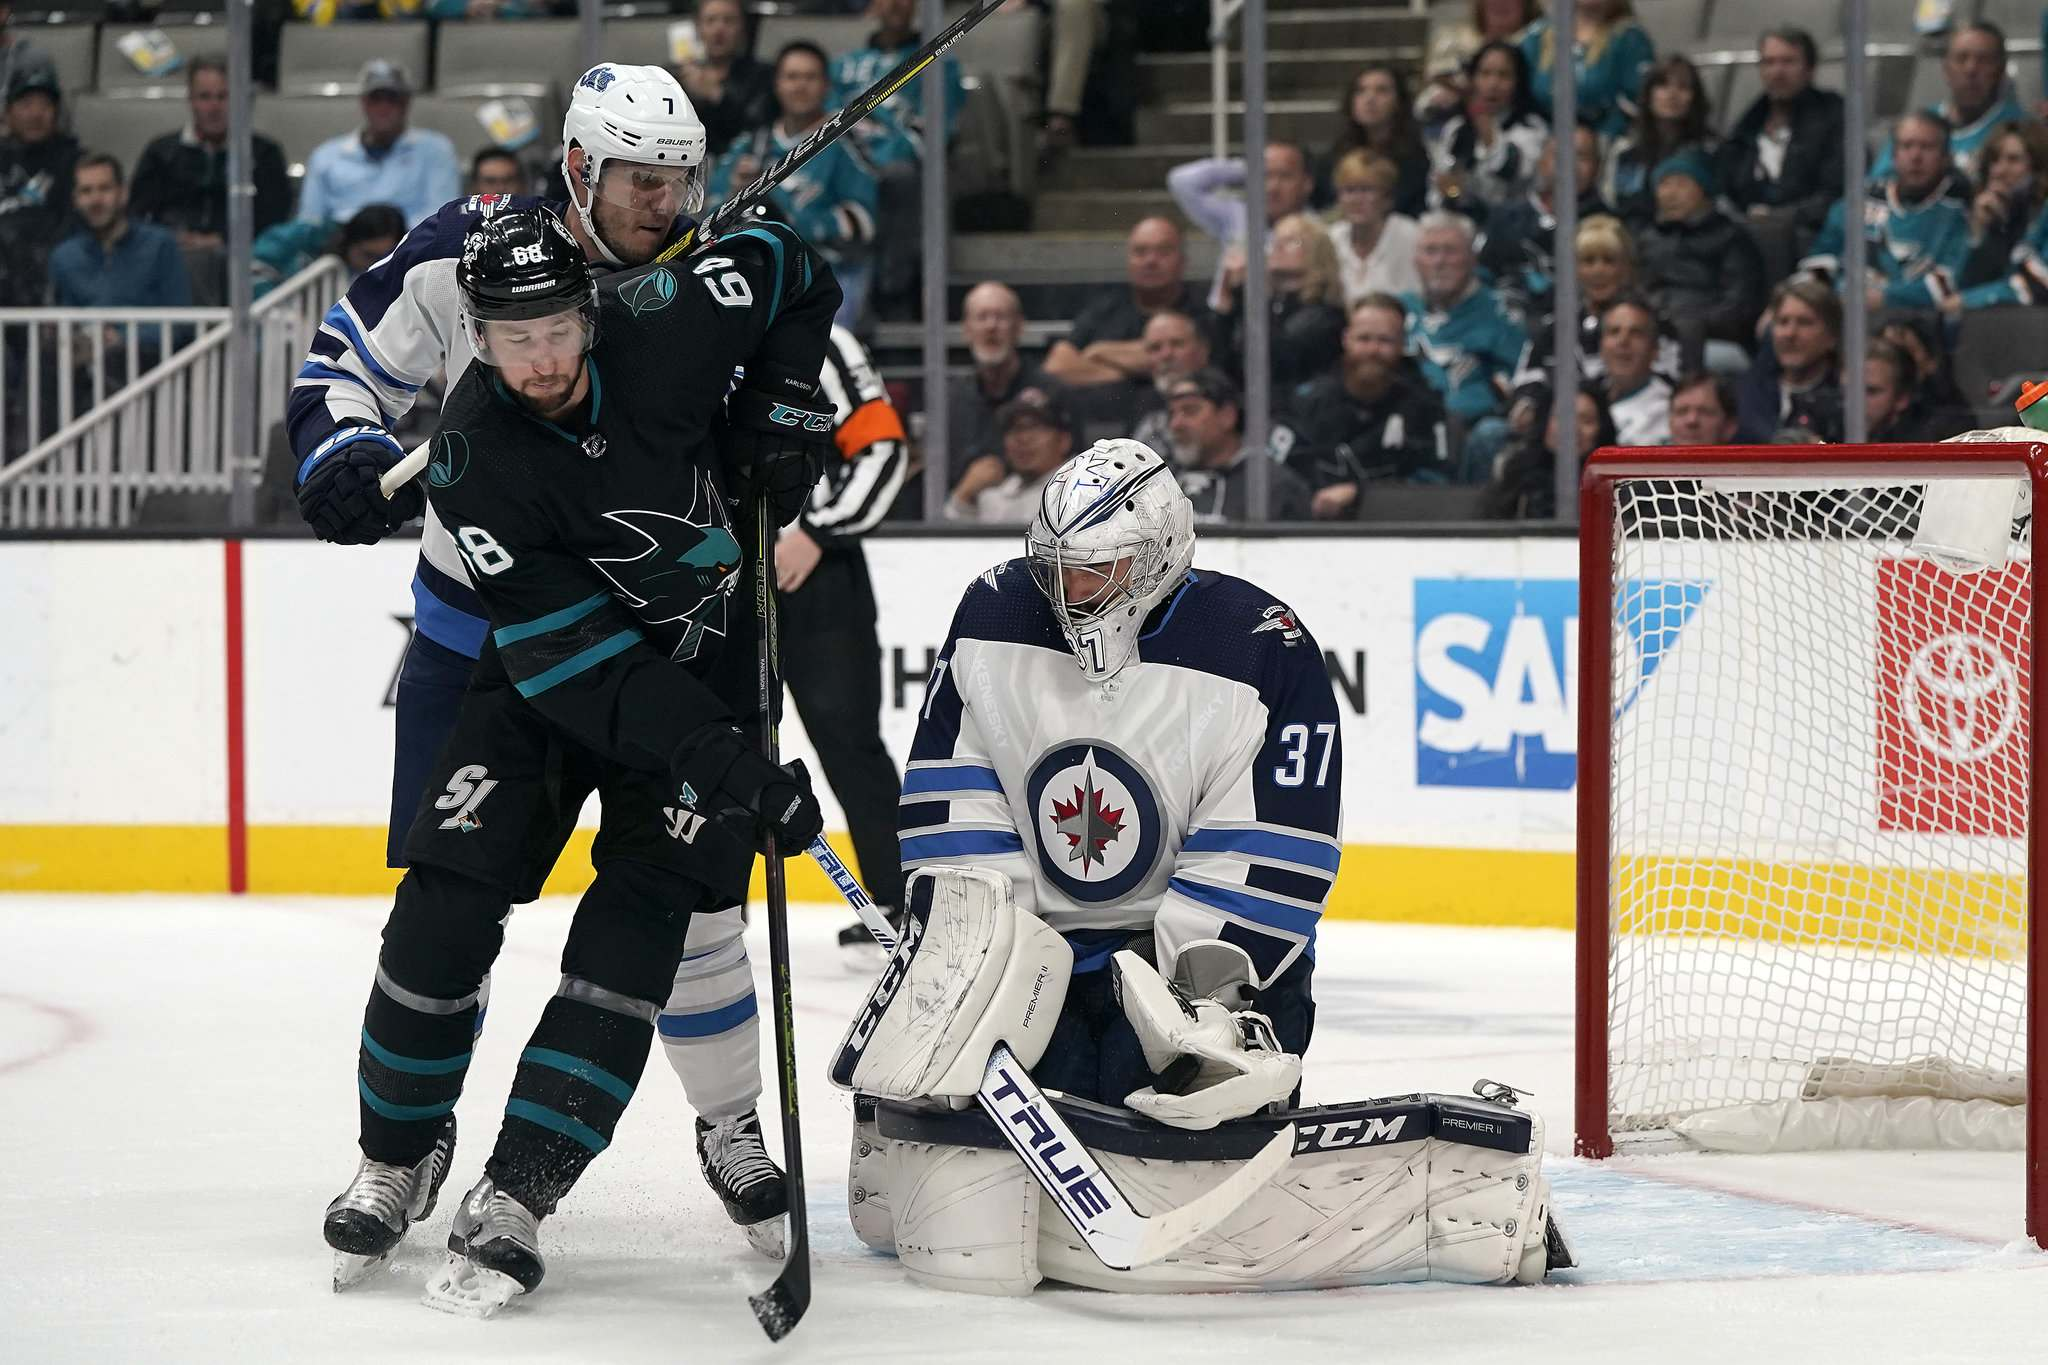 (AP Photo/Tony Avelar)</p><p>Winnipeg Jets goaltender Connor Hellebuyck stops a shot from San Jose Sharks centre Melker Karlsson during the first period in San Jose, Calif., Friday.</p>